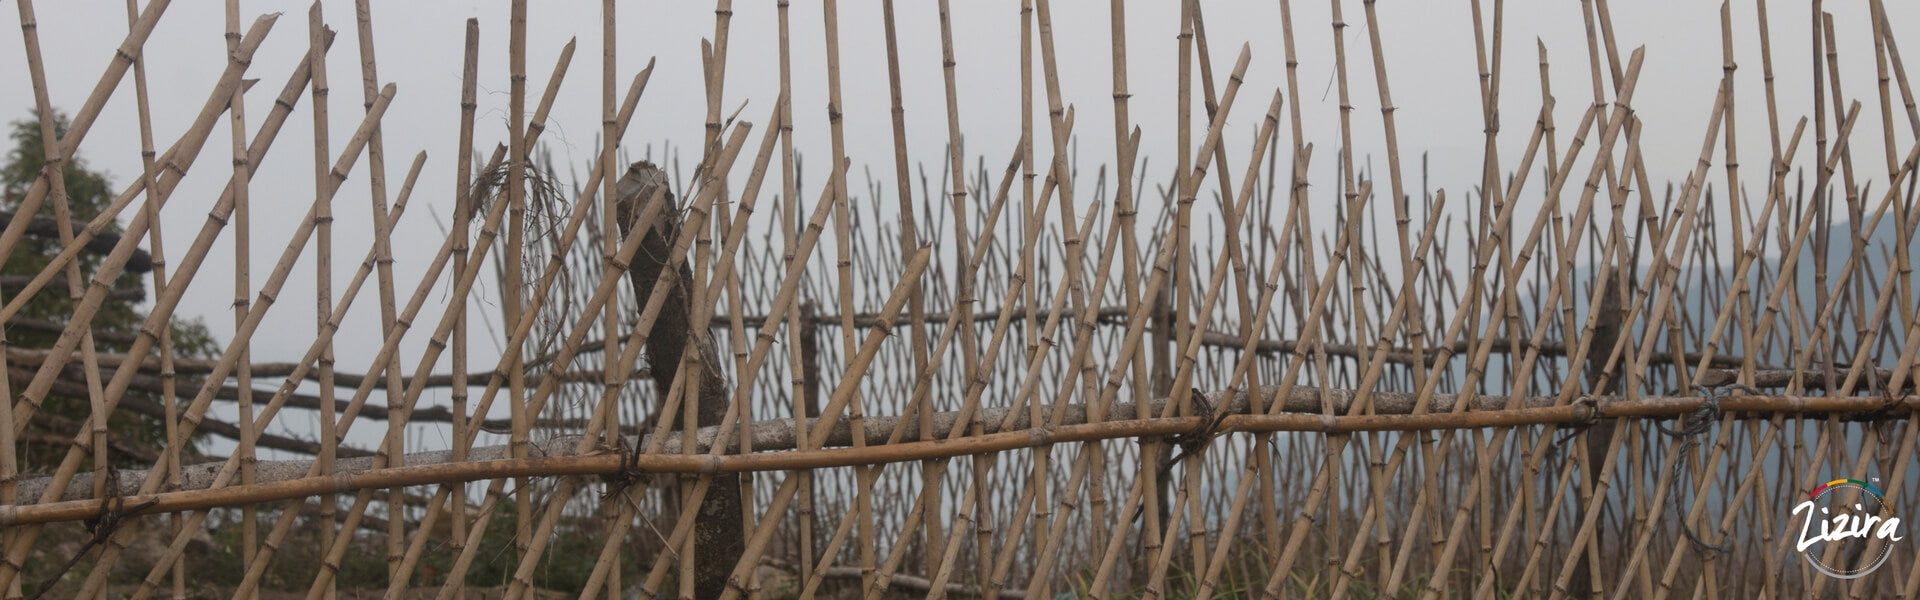 7 Reasons Why Bamboo Farming Can Save the Environment